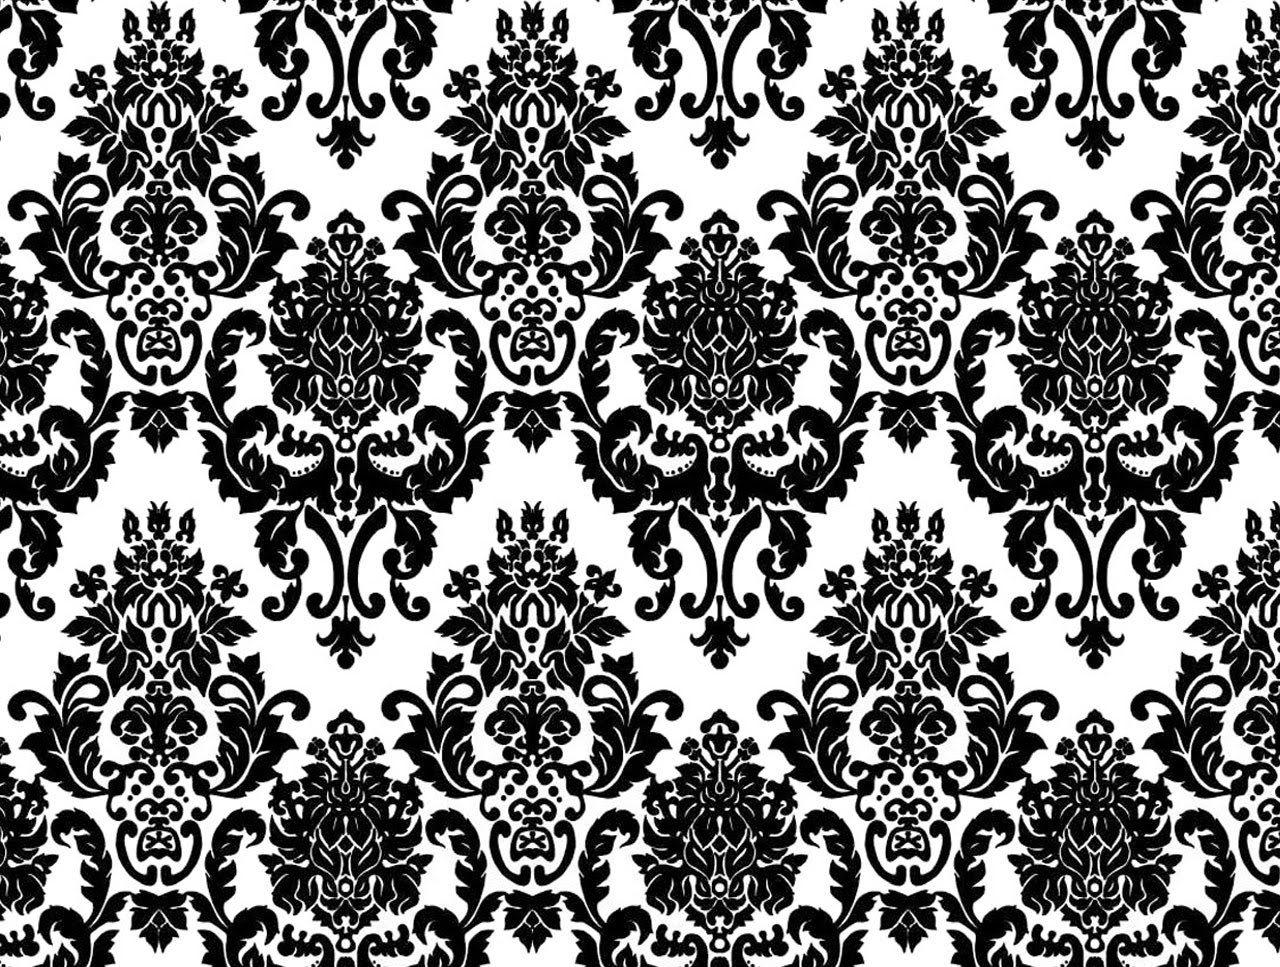 Mix Damask Wallpaper ~ WallpaperYork | Brows your wallpaper here | Best quality wallpapers